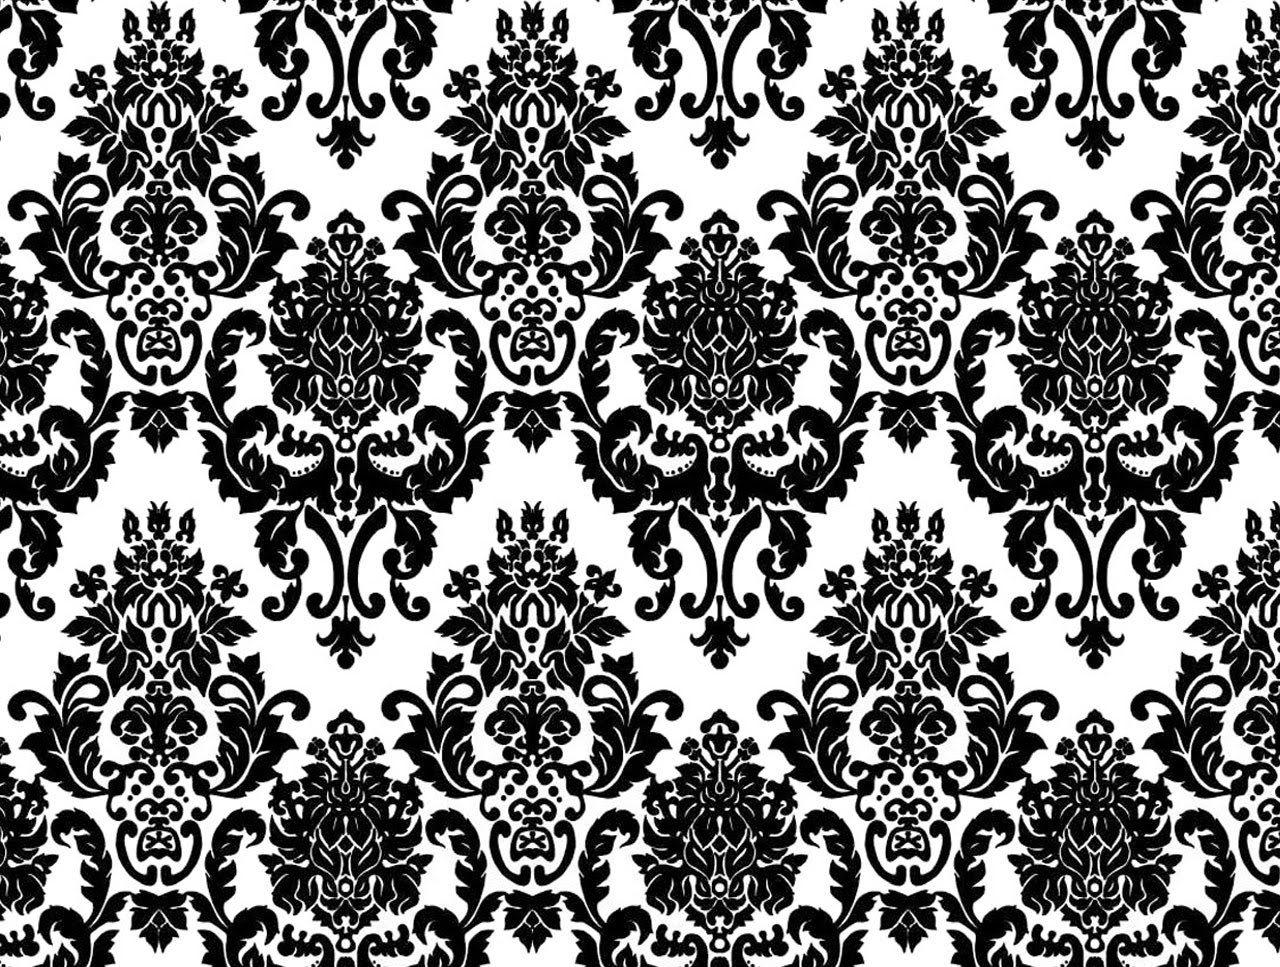 Mix Damask Wallpaper ~ WallpaperYork | Brows your wallpaper here | Best quality wallpapers